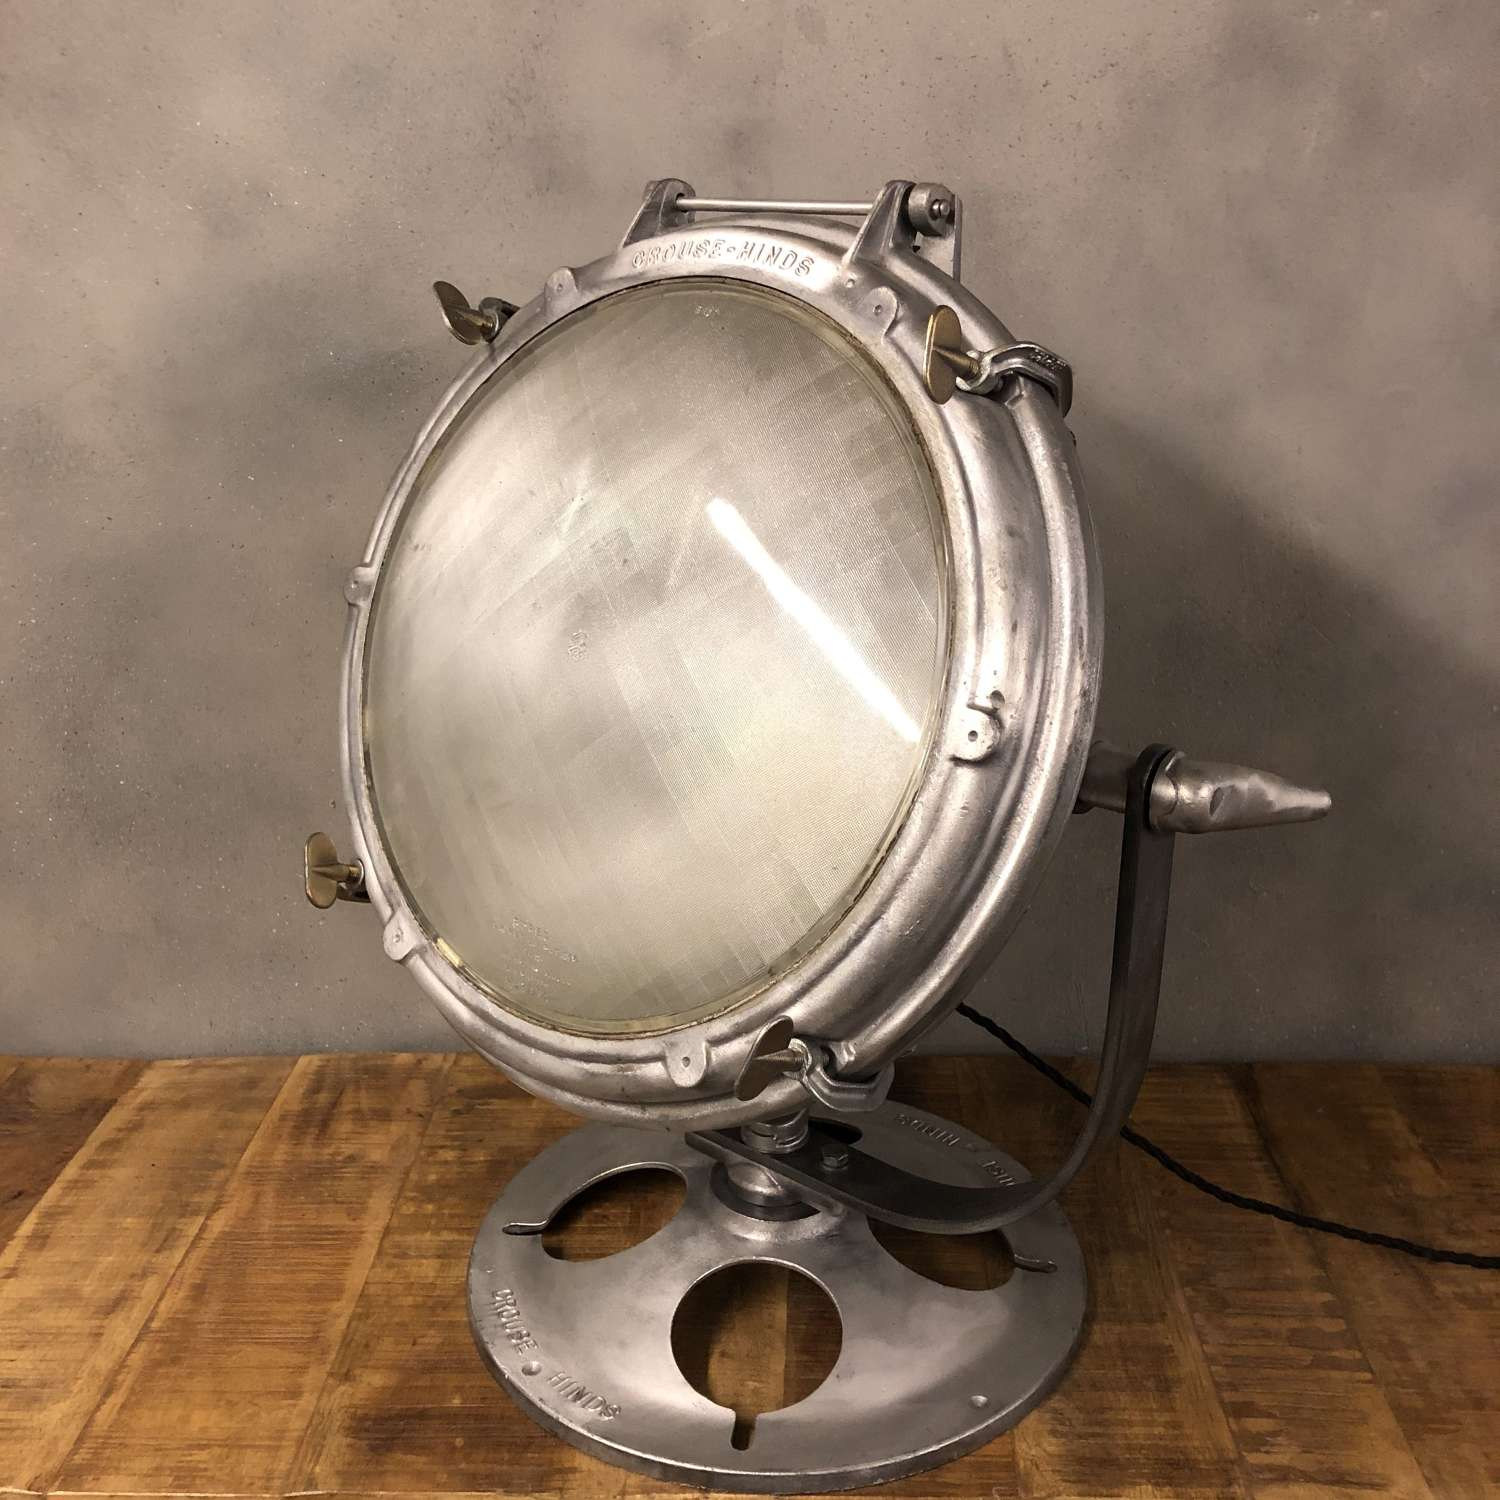 Midcentury search light US Navy Crouse & Hinds